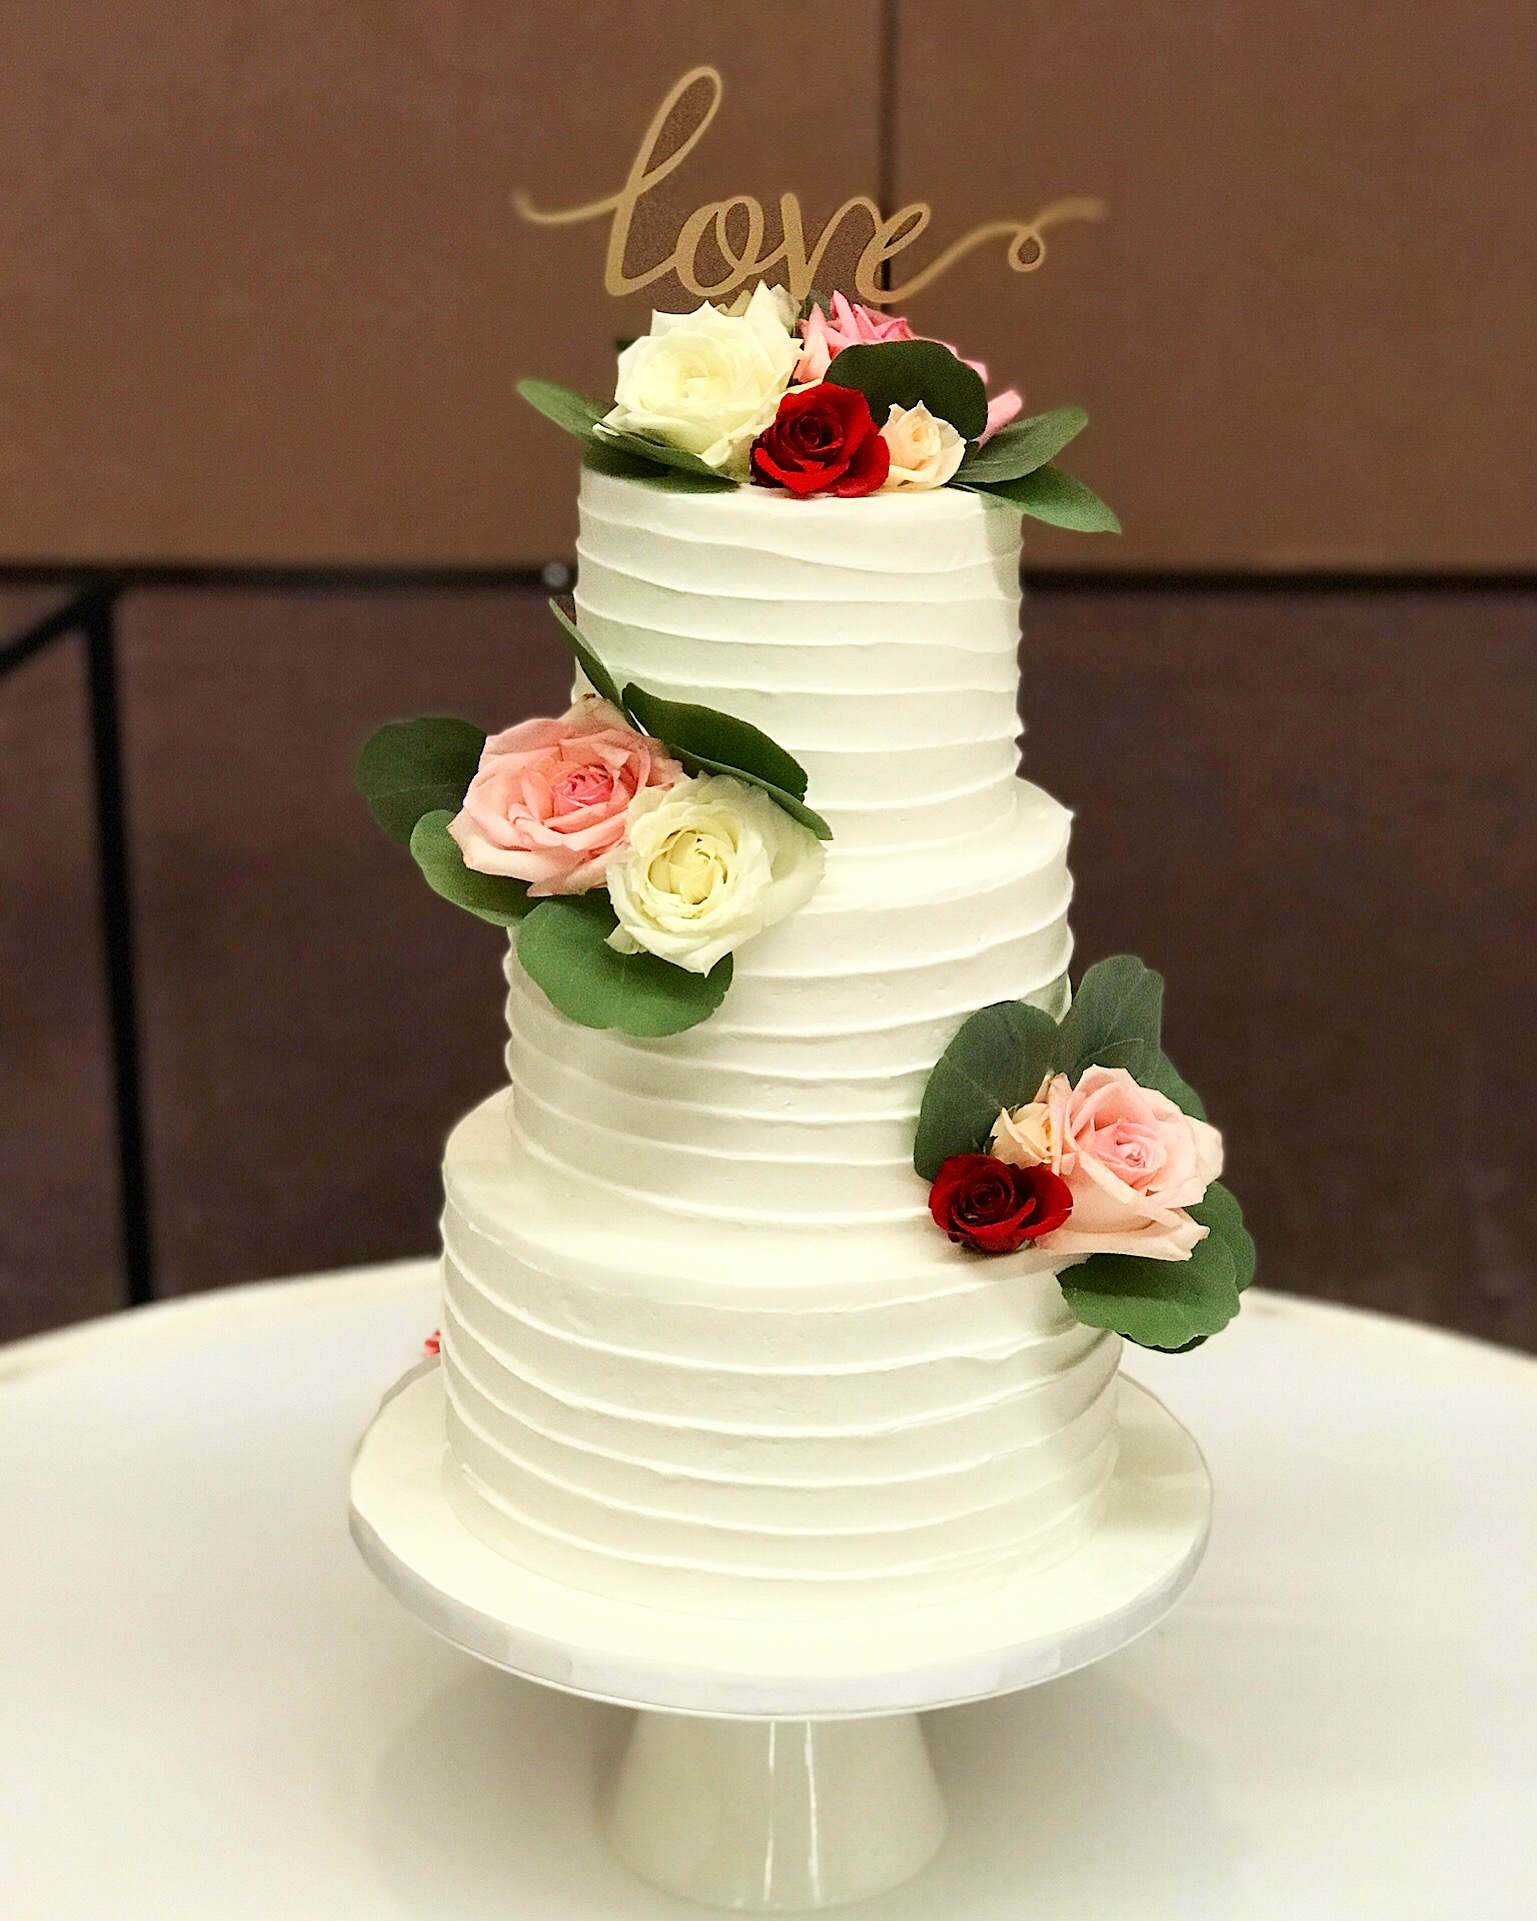 Aloha and Welcome to A Cake Life. A Cake Life is dedicated to creating customized cakes for all your special occasions.Whether you